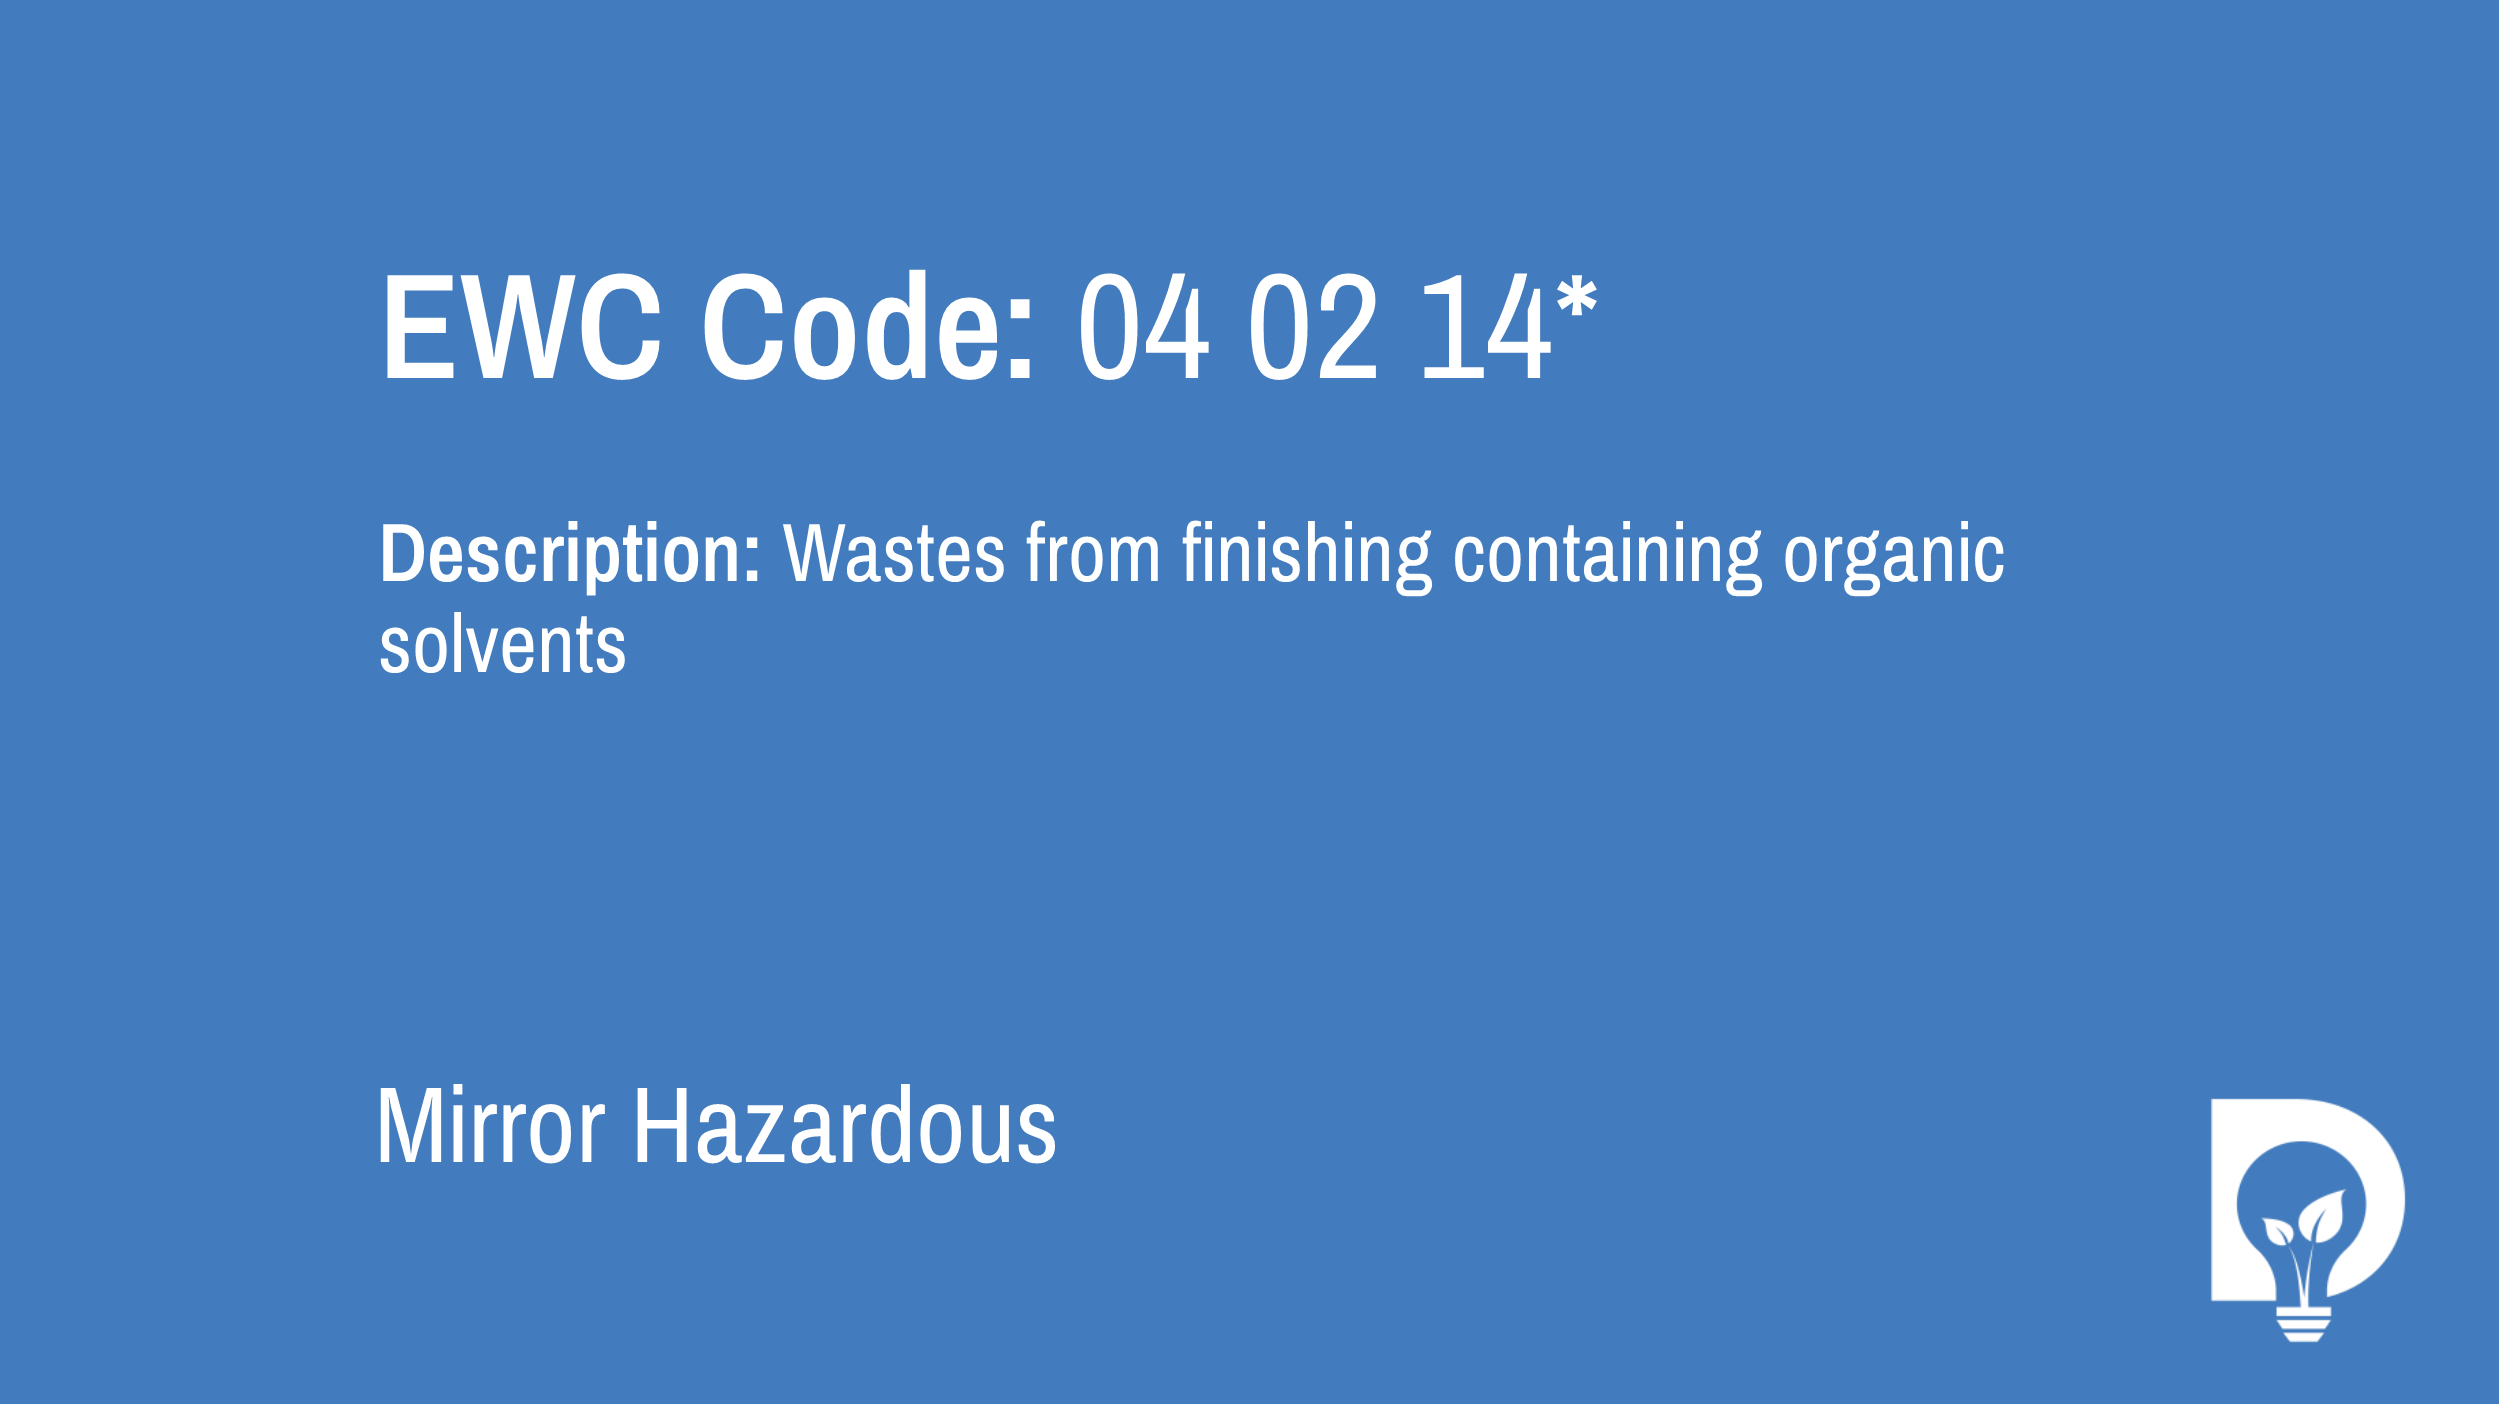 EWC Code: 04 02 14* - wastes from finishing containing organic solvents. Type: Mirror Hazardous. Image by Dsposal